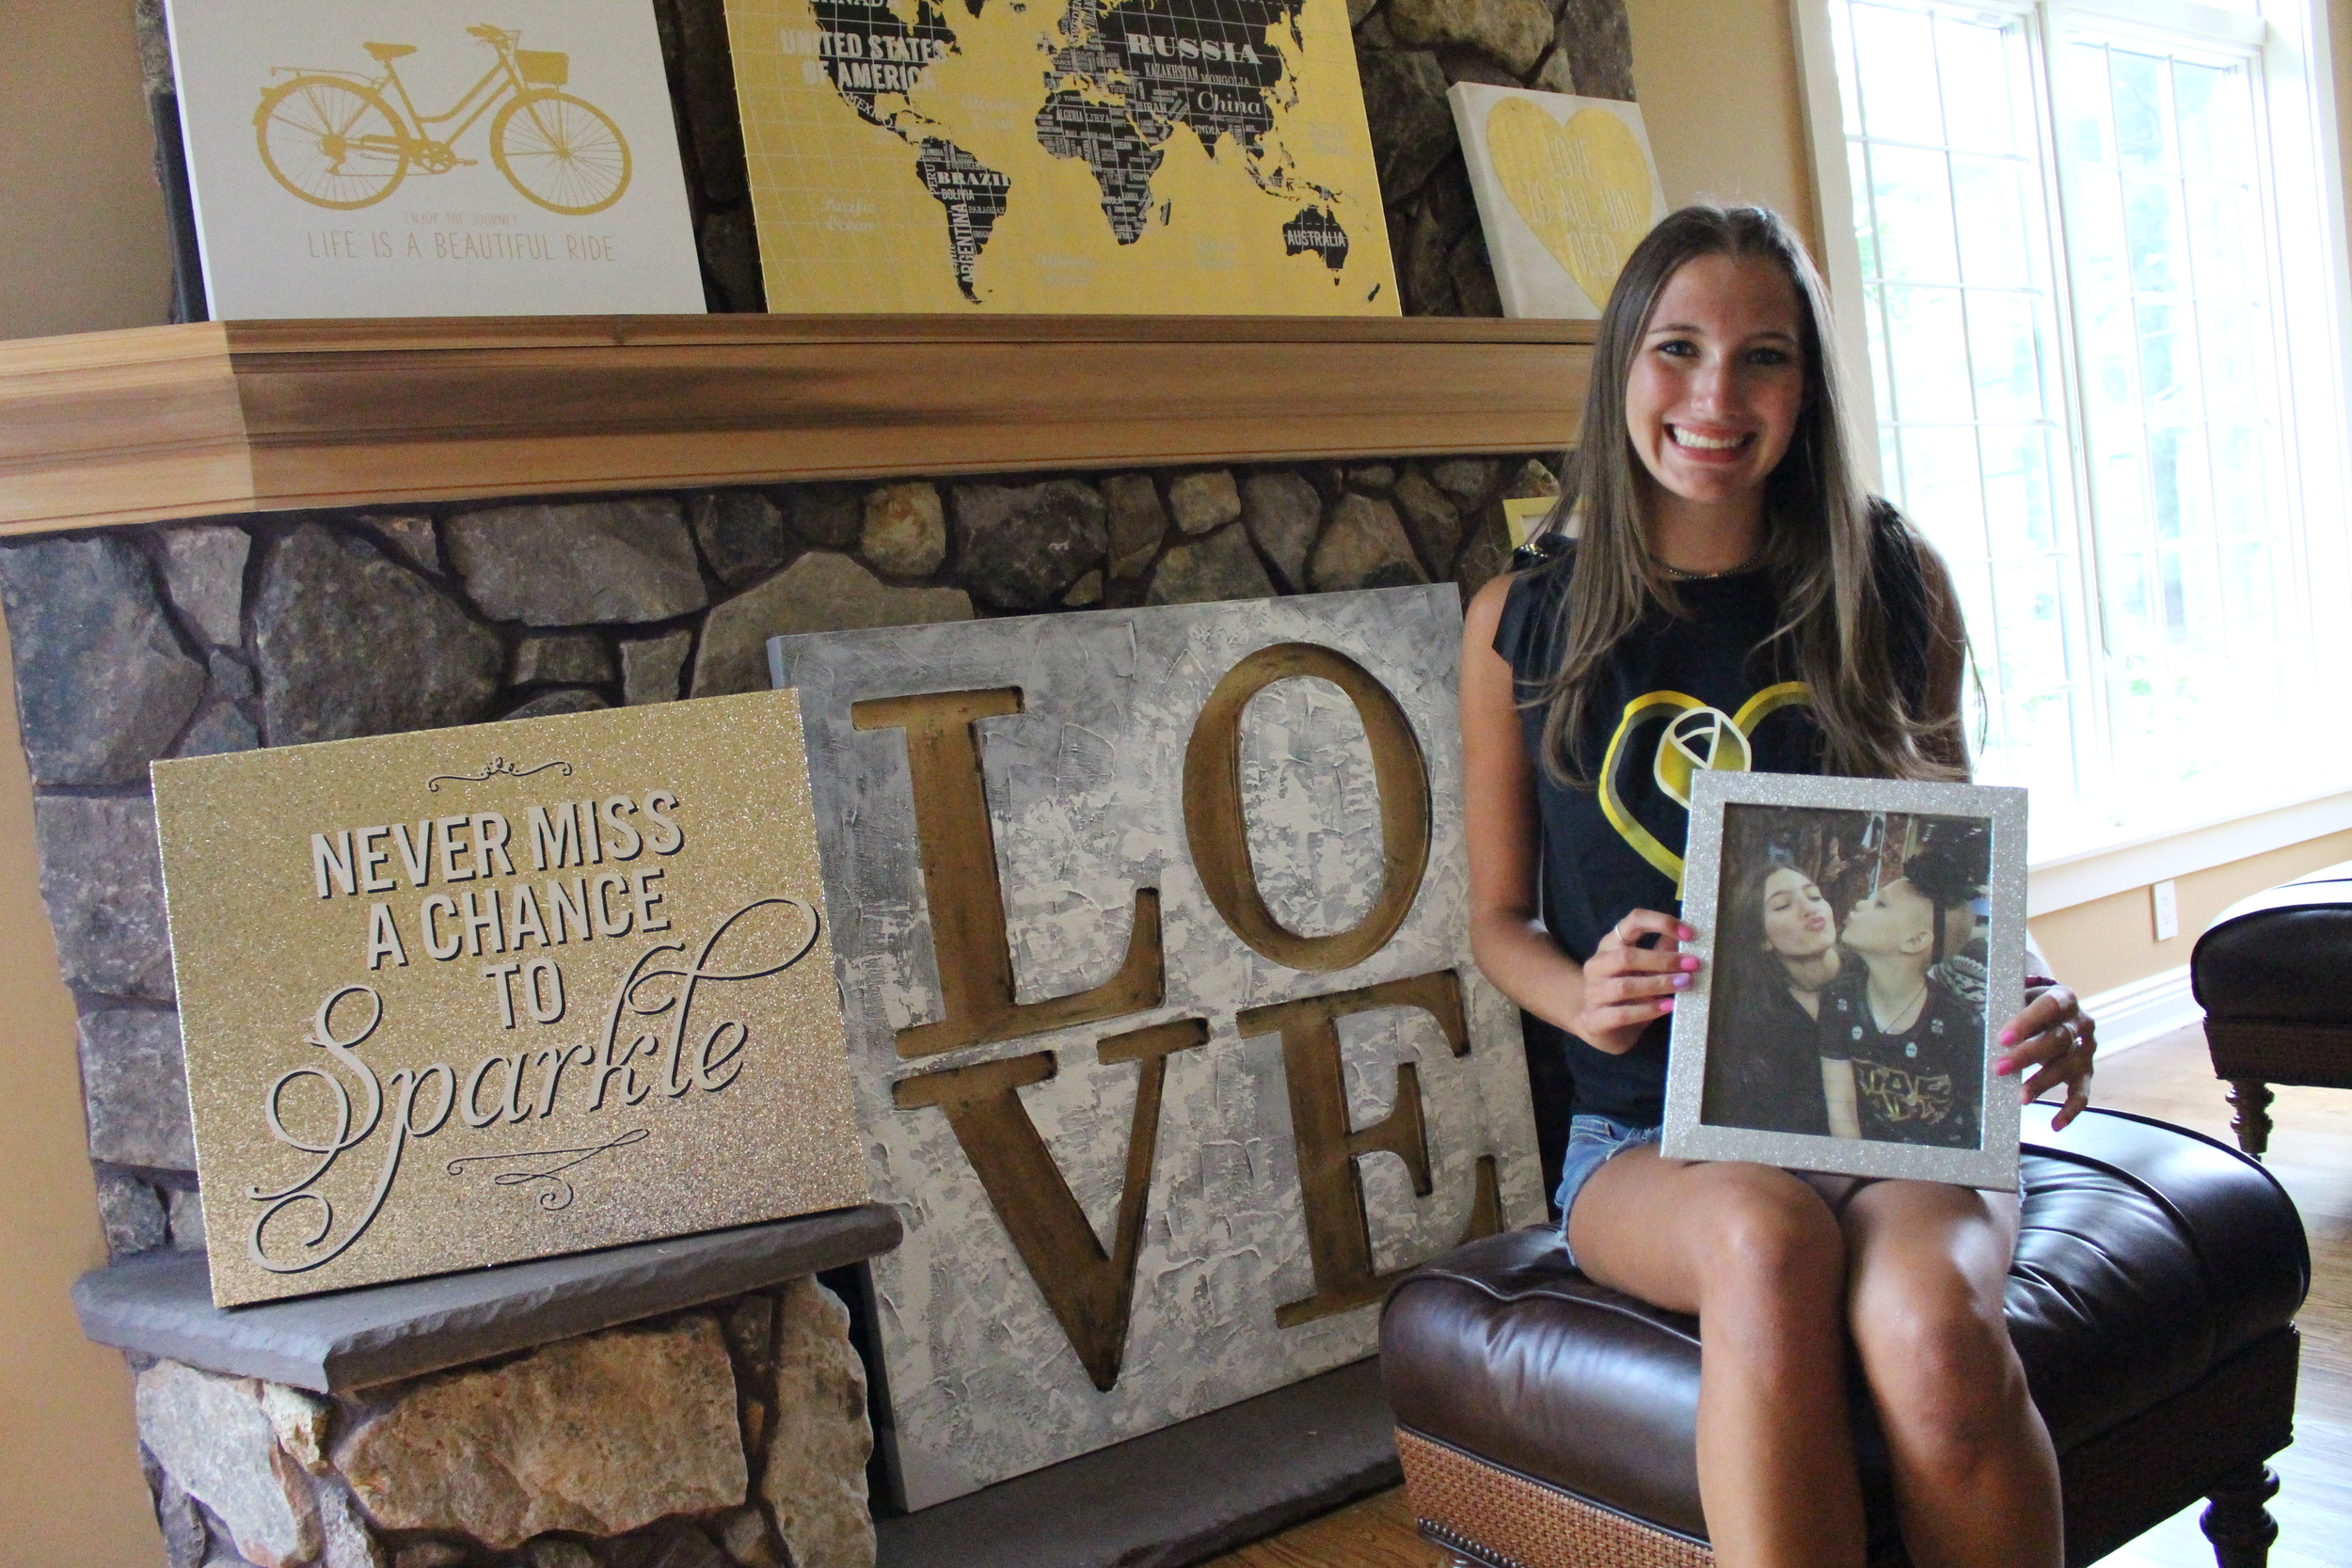 Jordan Belous, 17, of Melville, has raised more than $41,000 in funds within the first year of her Whip Pediatric Cancer campaign, which benefits benefit pediatric cancer research.